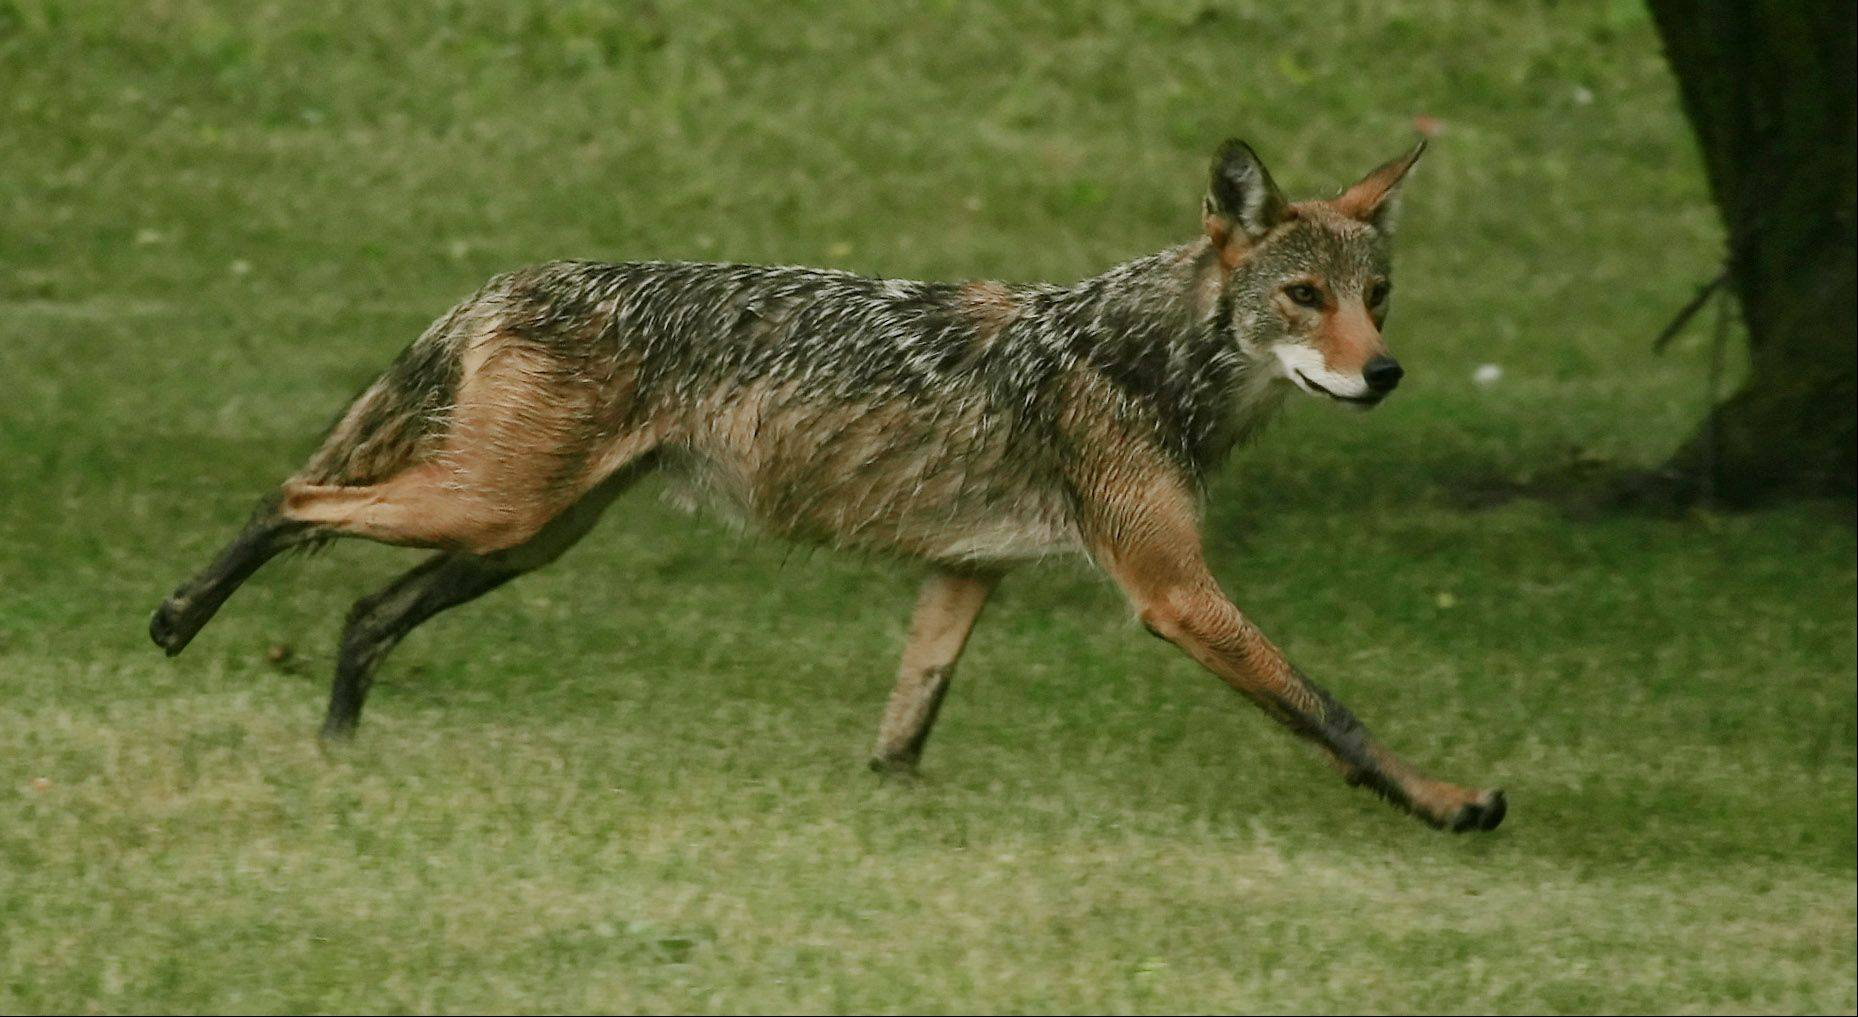 Warrenville officials are warning residents to keep an eye on their pets when outdoors after a small dog was killed by a coyote Friday.